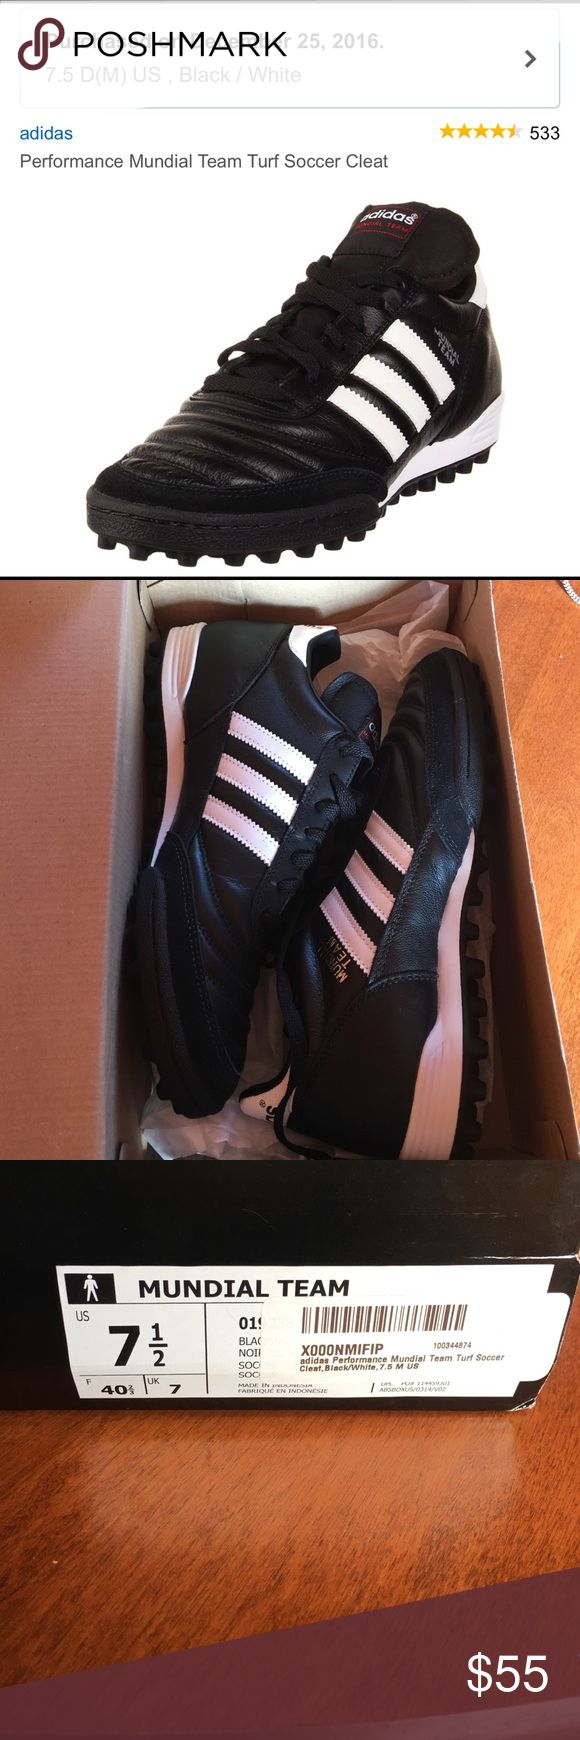 Brand NWT - Adidas Mundial Soccer Cleats - 7.5 men Brand new pair of Adidas Mundial cleats- never worn. Ordered wrong size and return window has closed. Paid $75 on Amazon. New and in original box and packaging. Offers welcome!!! Adidas Shoes Athletic Shoes